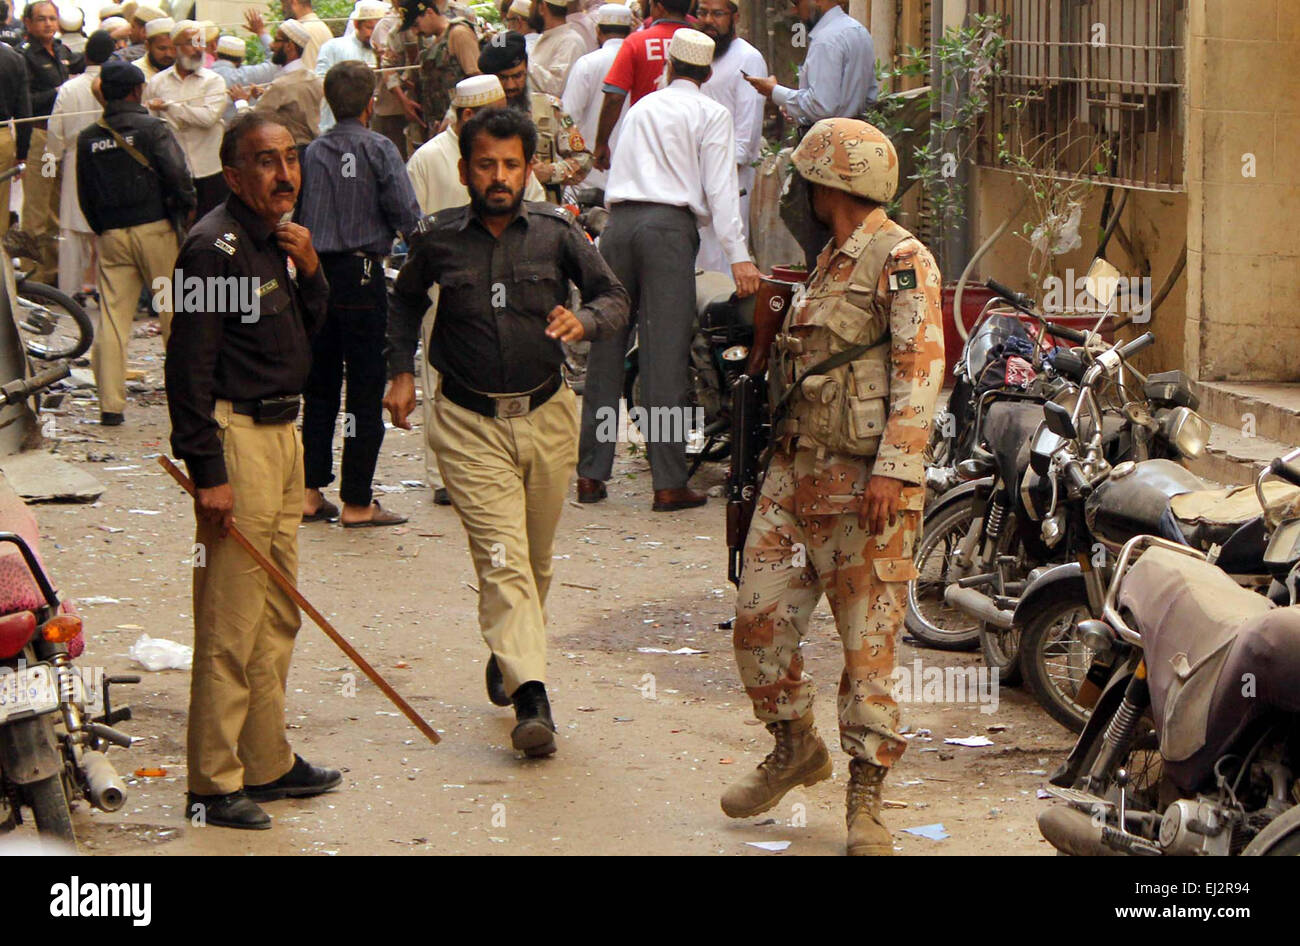 Chaos just after a bomb blast occurred outside Bohra Community Mosque near Pakistan Chowk in Karachi on Friday, - Stock Image